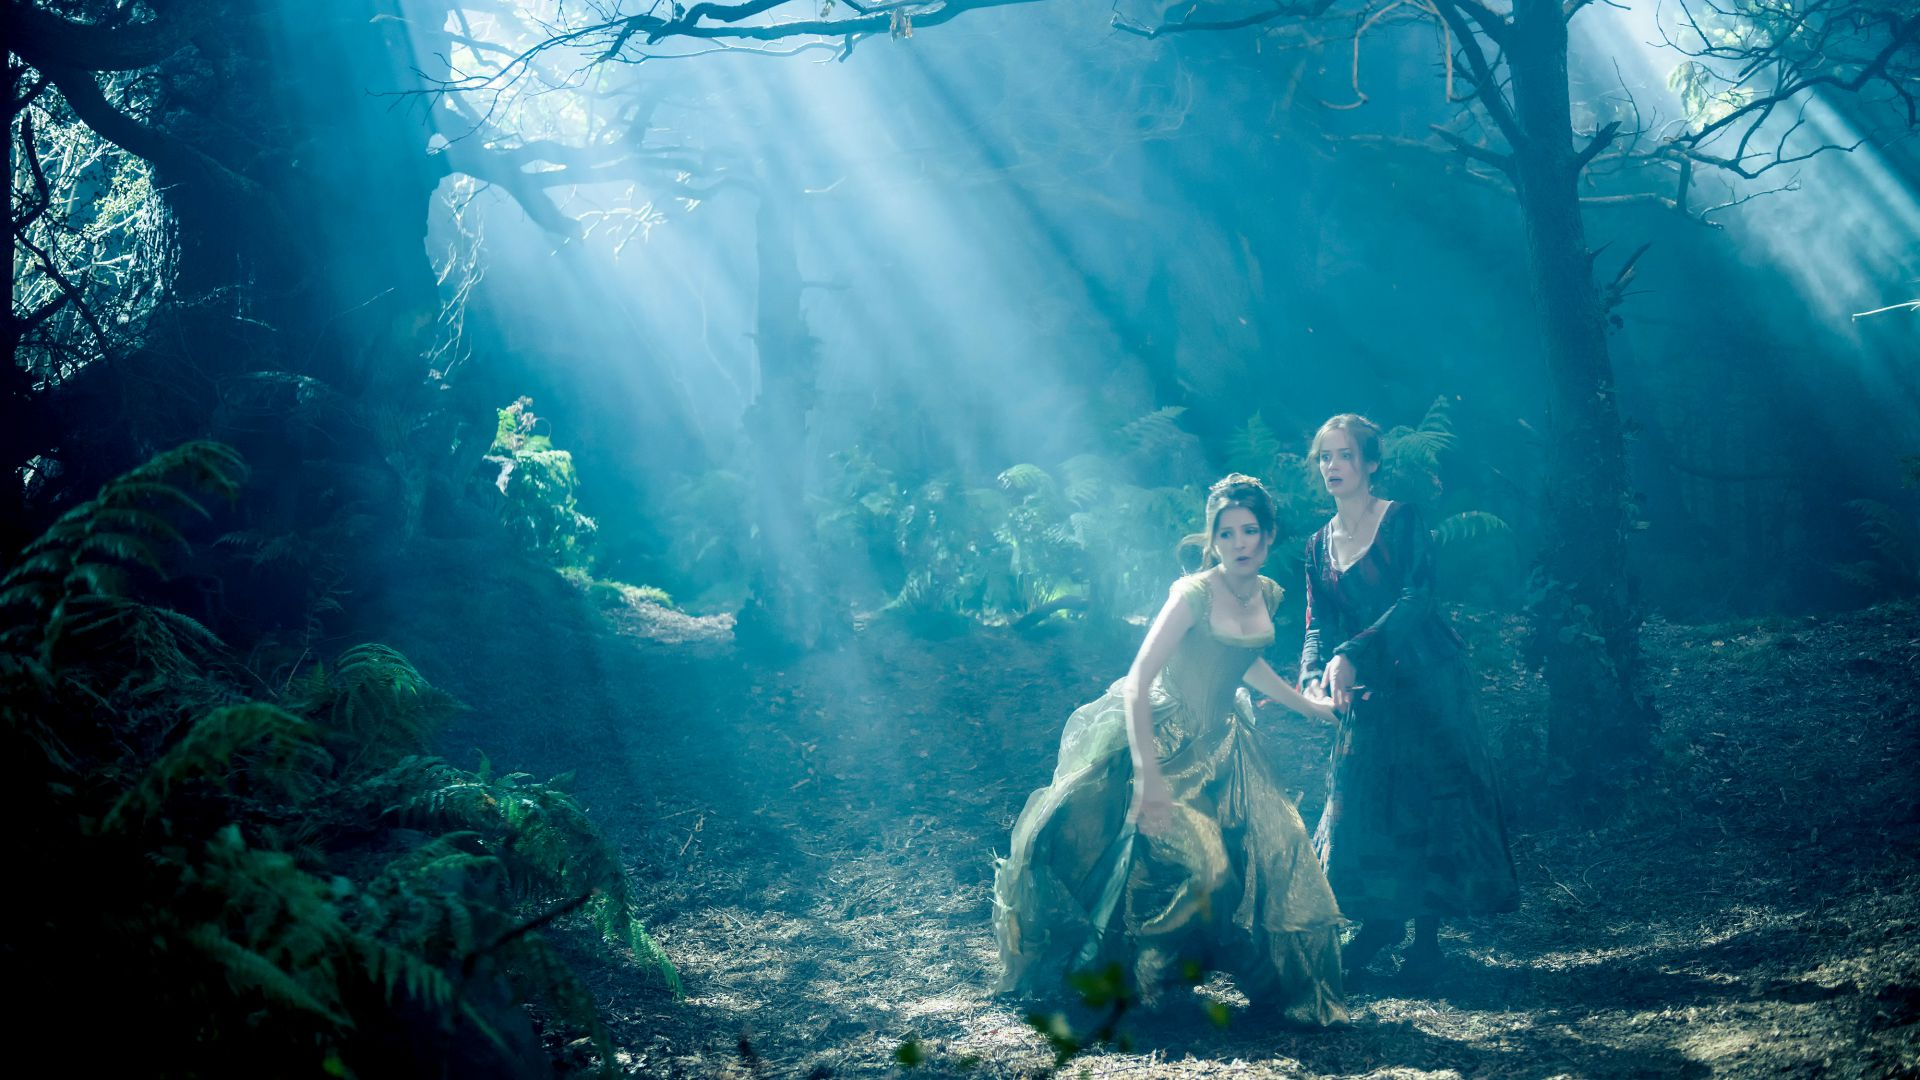 Into the woods, Best Movies of 2015, movie, fairy tale, fantasy, Anna Kendrick (horizontal)